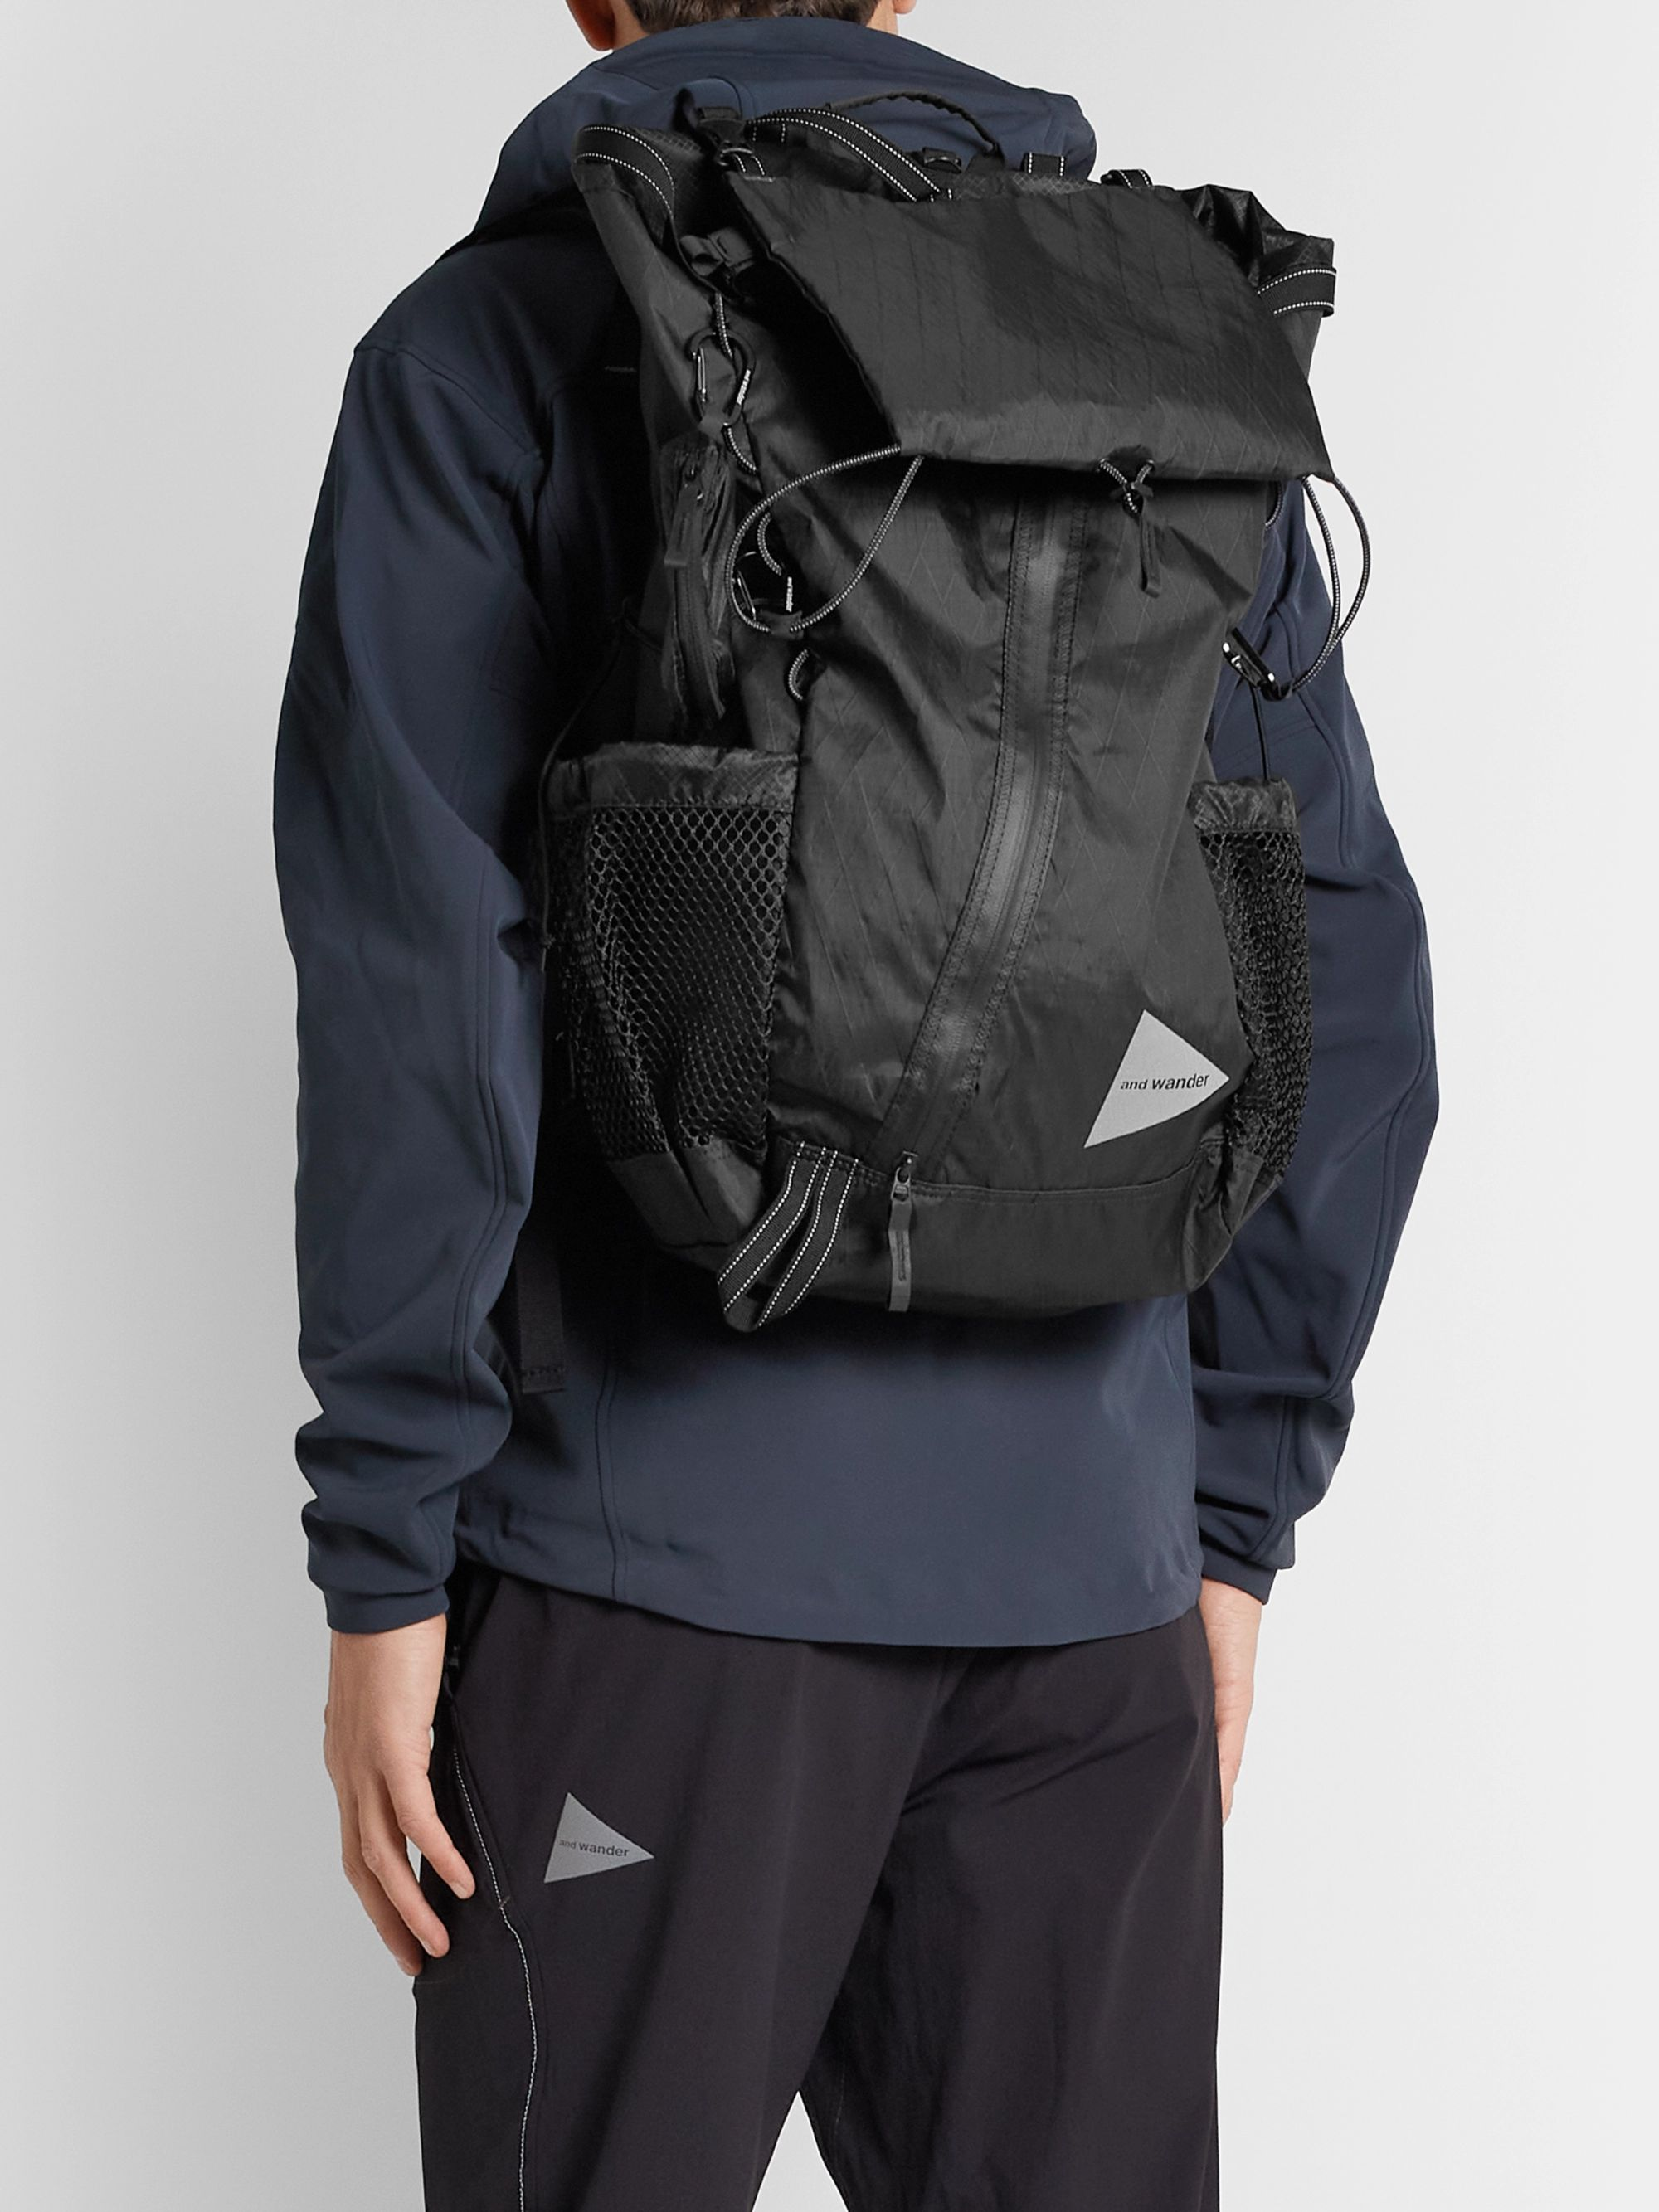 AND WANDER Logo-Print X-Pac Shell and Mesh Backpack